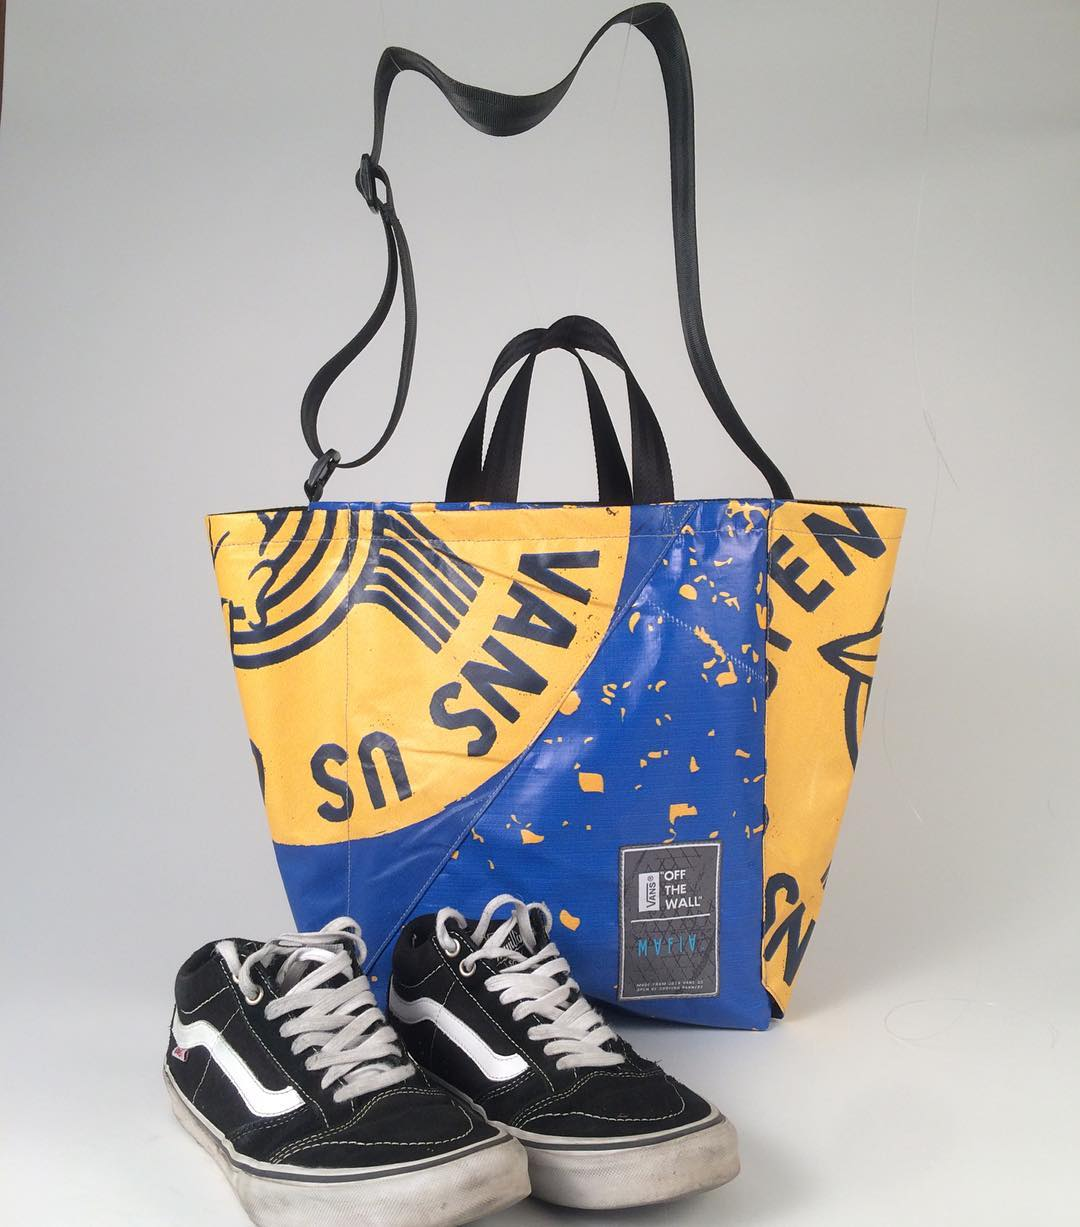 #tbt a collaboration story // @Vans x Mafia. A series of bags we made out of the @usopenofsurf banners! A new edition coming soon? Stay tuned for details.